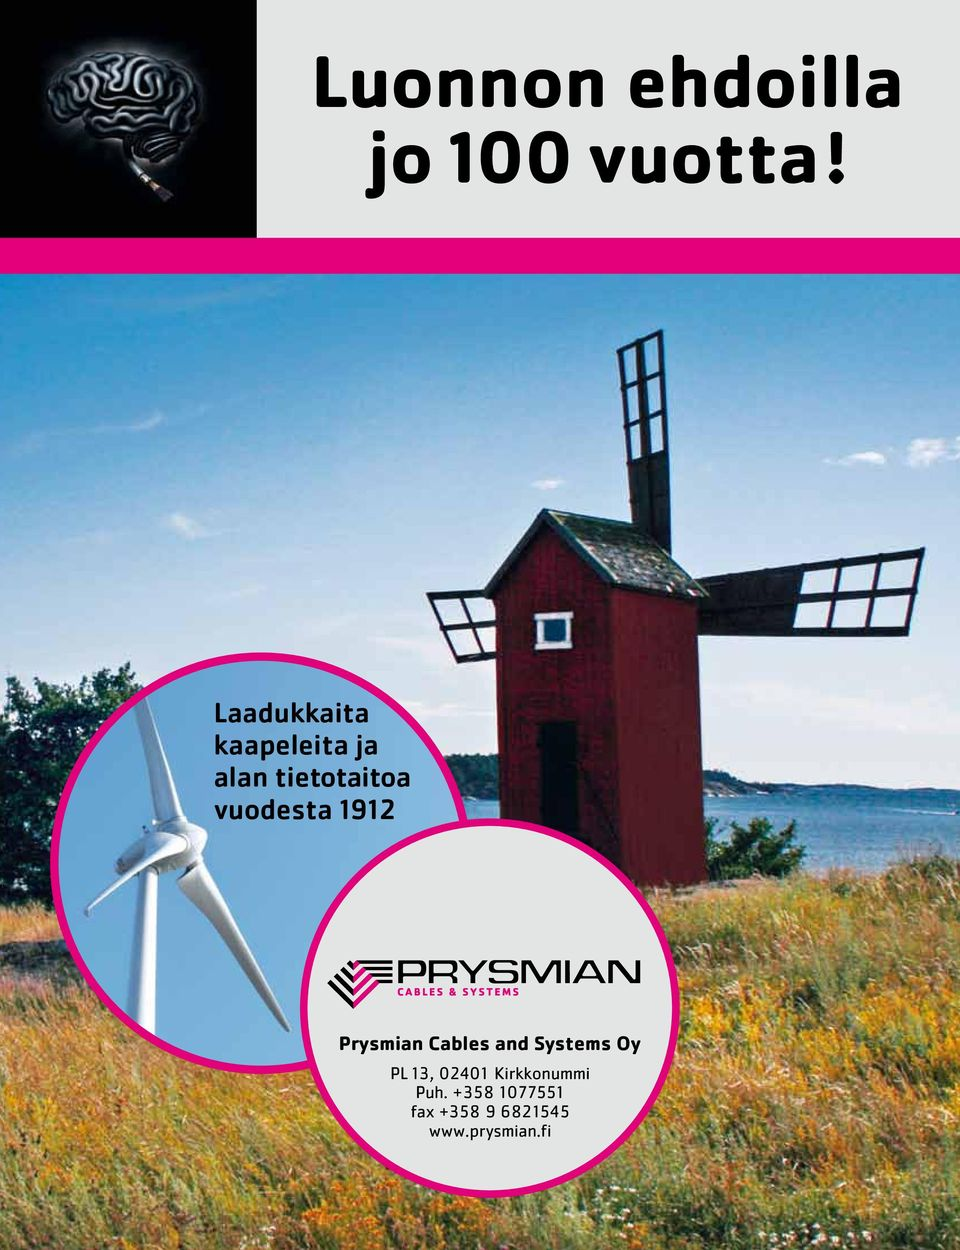 vuodesta 1912 Prysmian Cables and Systems Oy